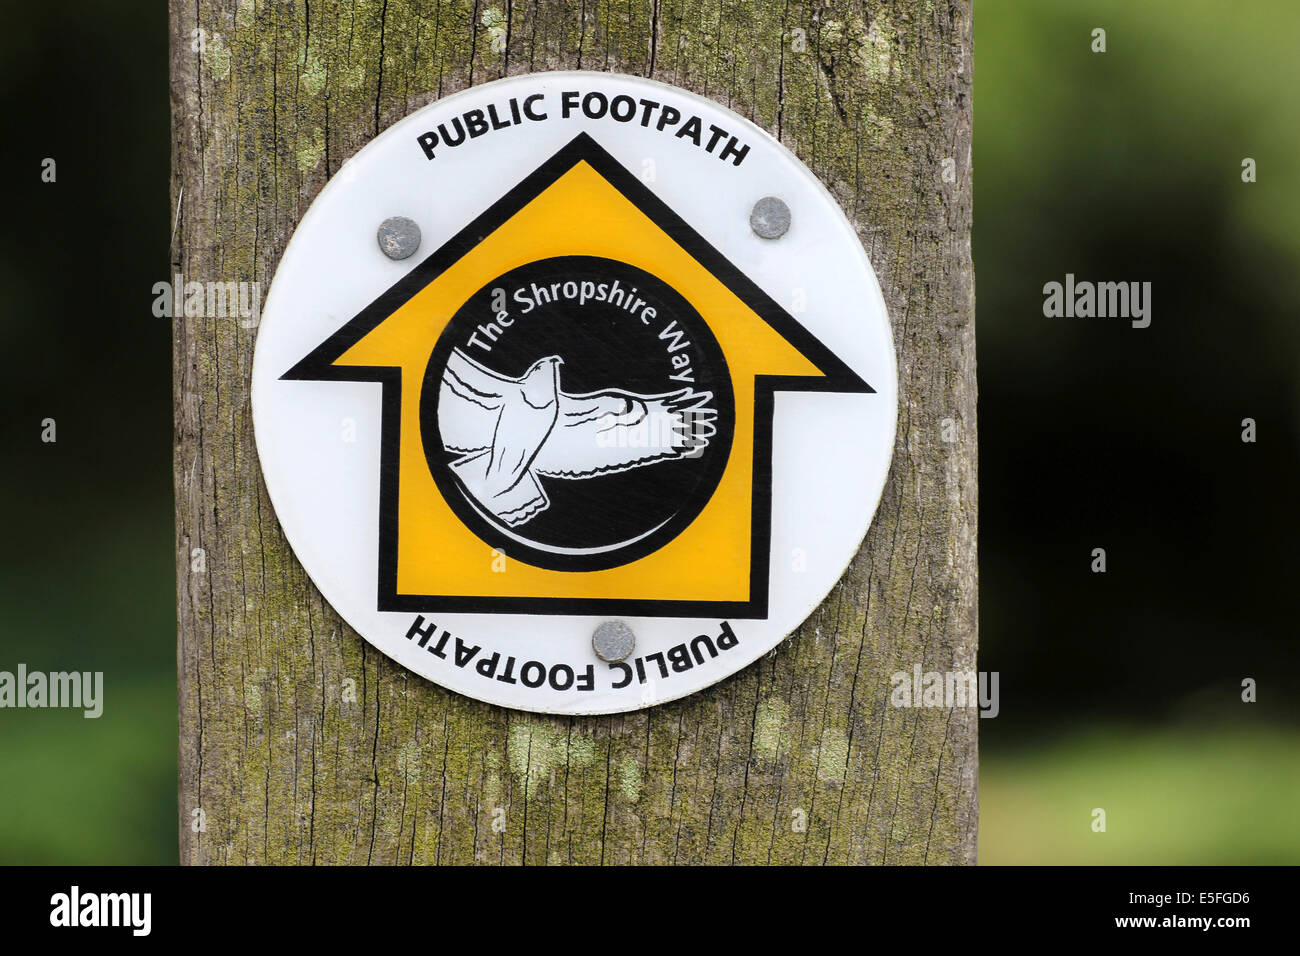 The Shropshire Way Public Footpath Sign - Stock Image